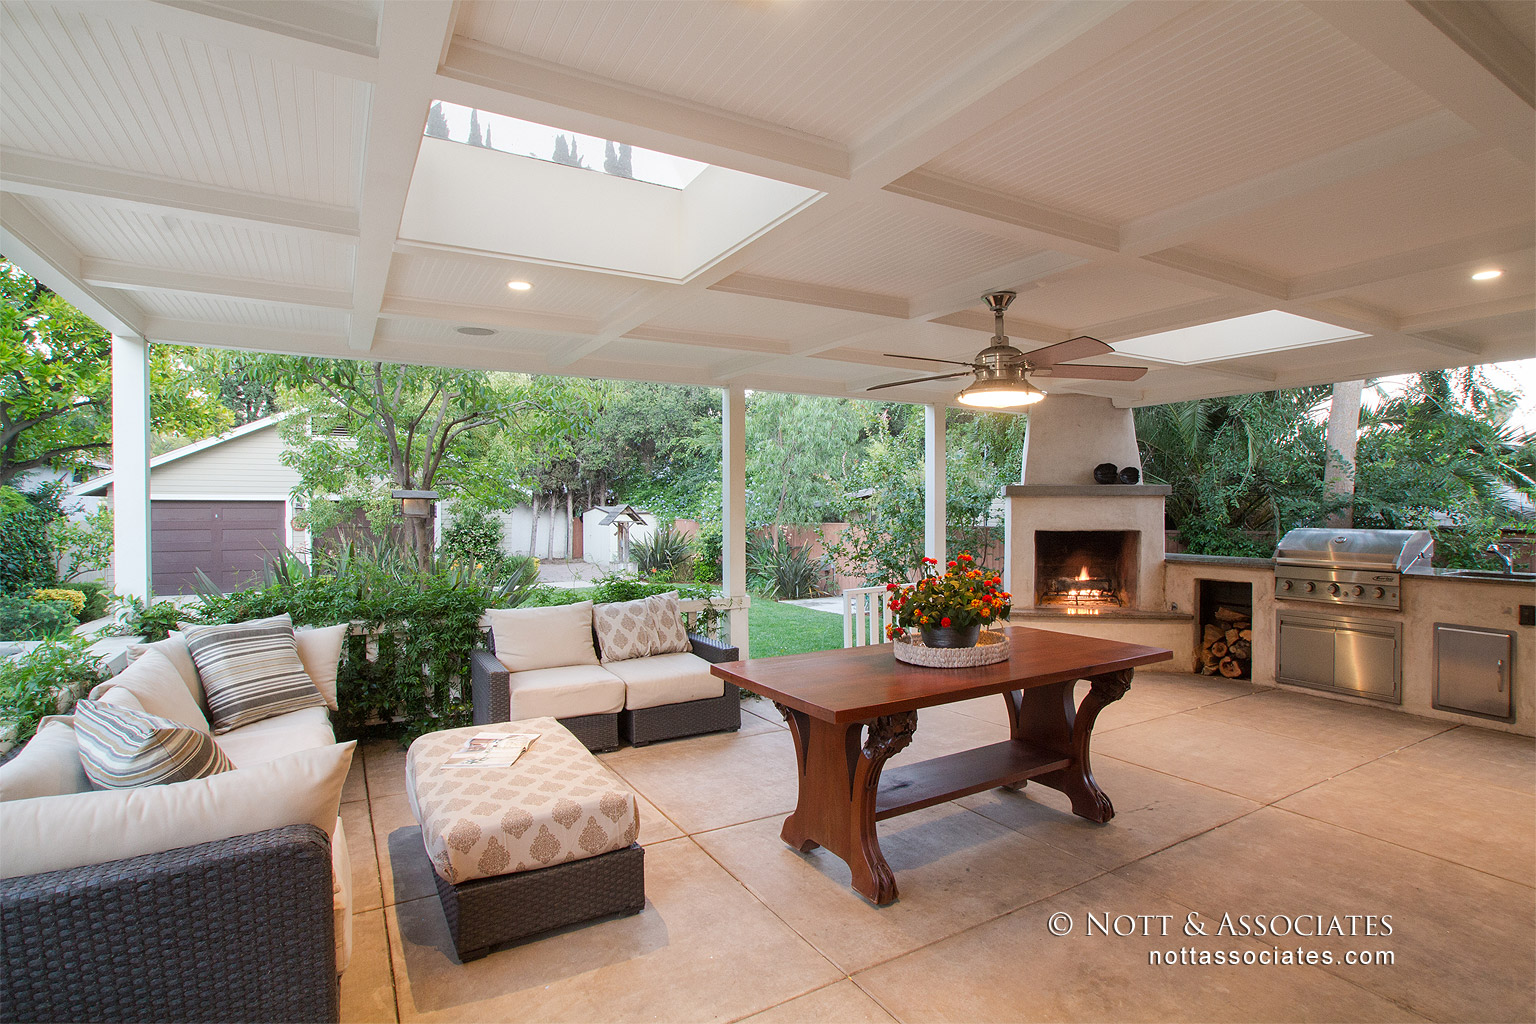 Outdoor Craftsman living space